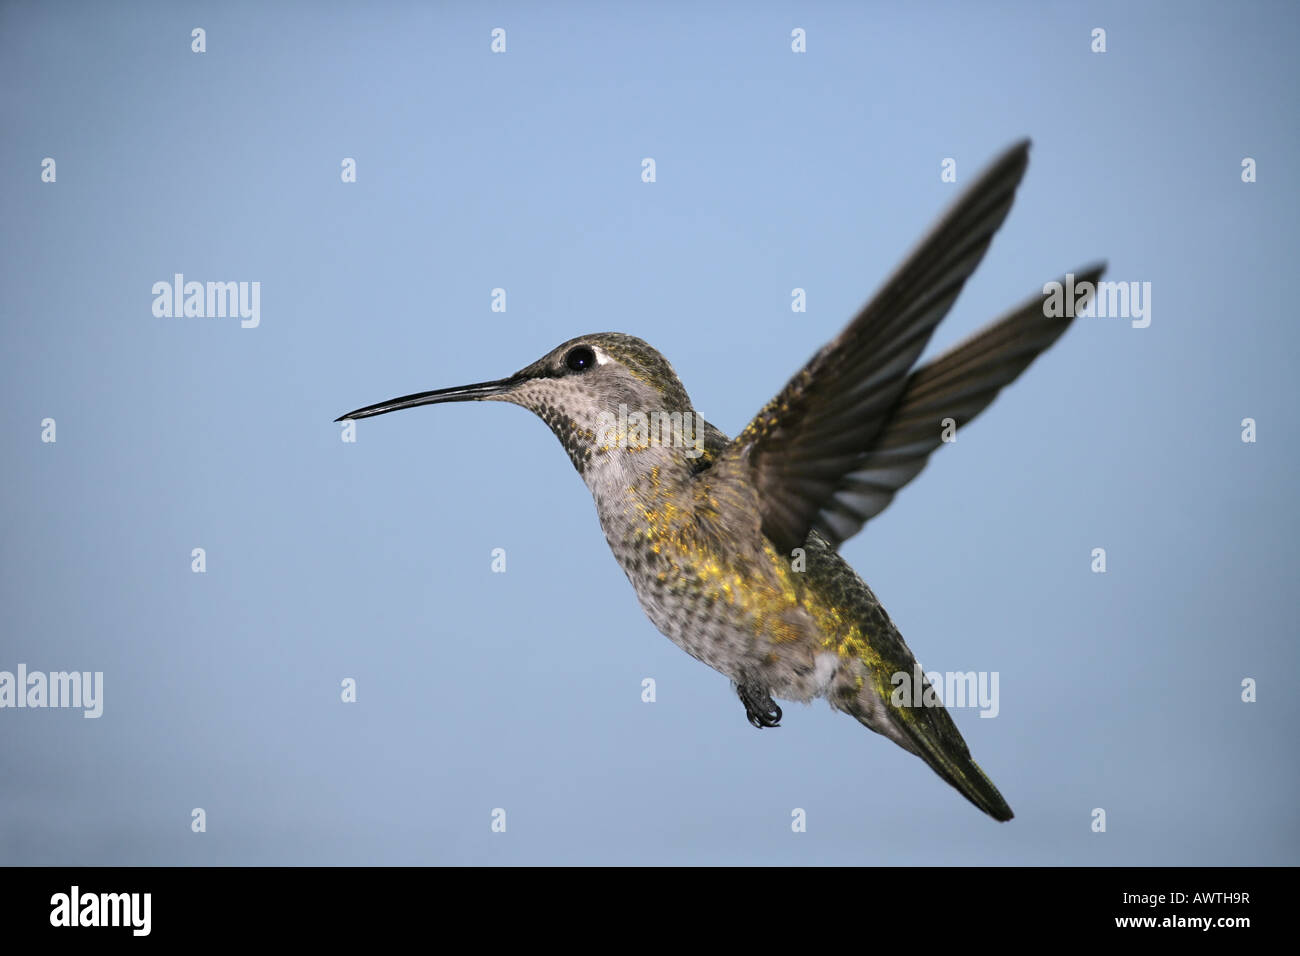 An Anna's Hummingbird, hovering with wings extended back, side view with a blue sky background - Stock Image